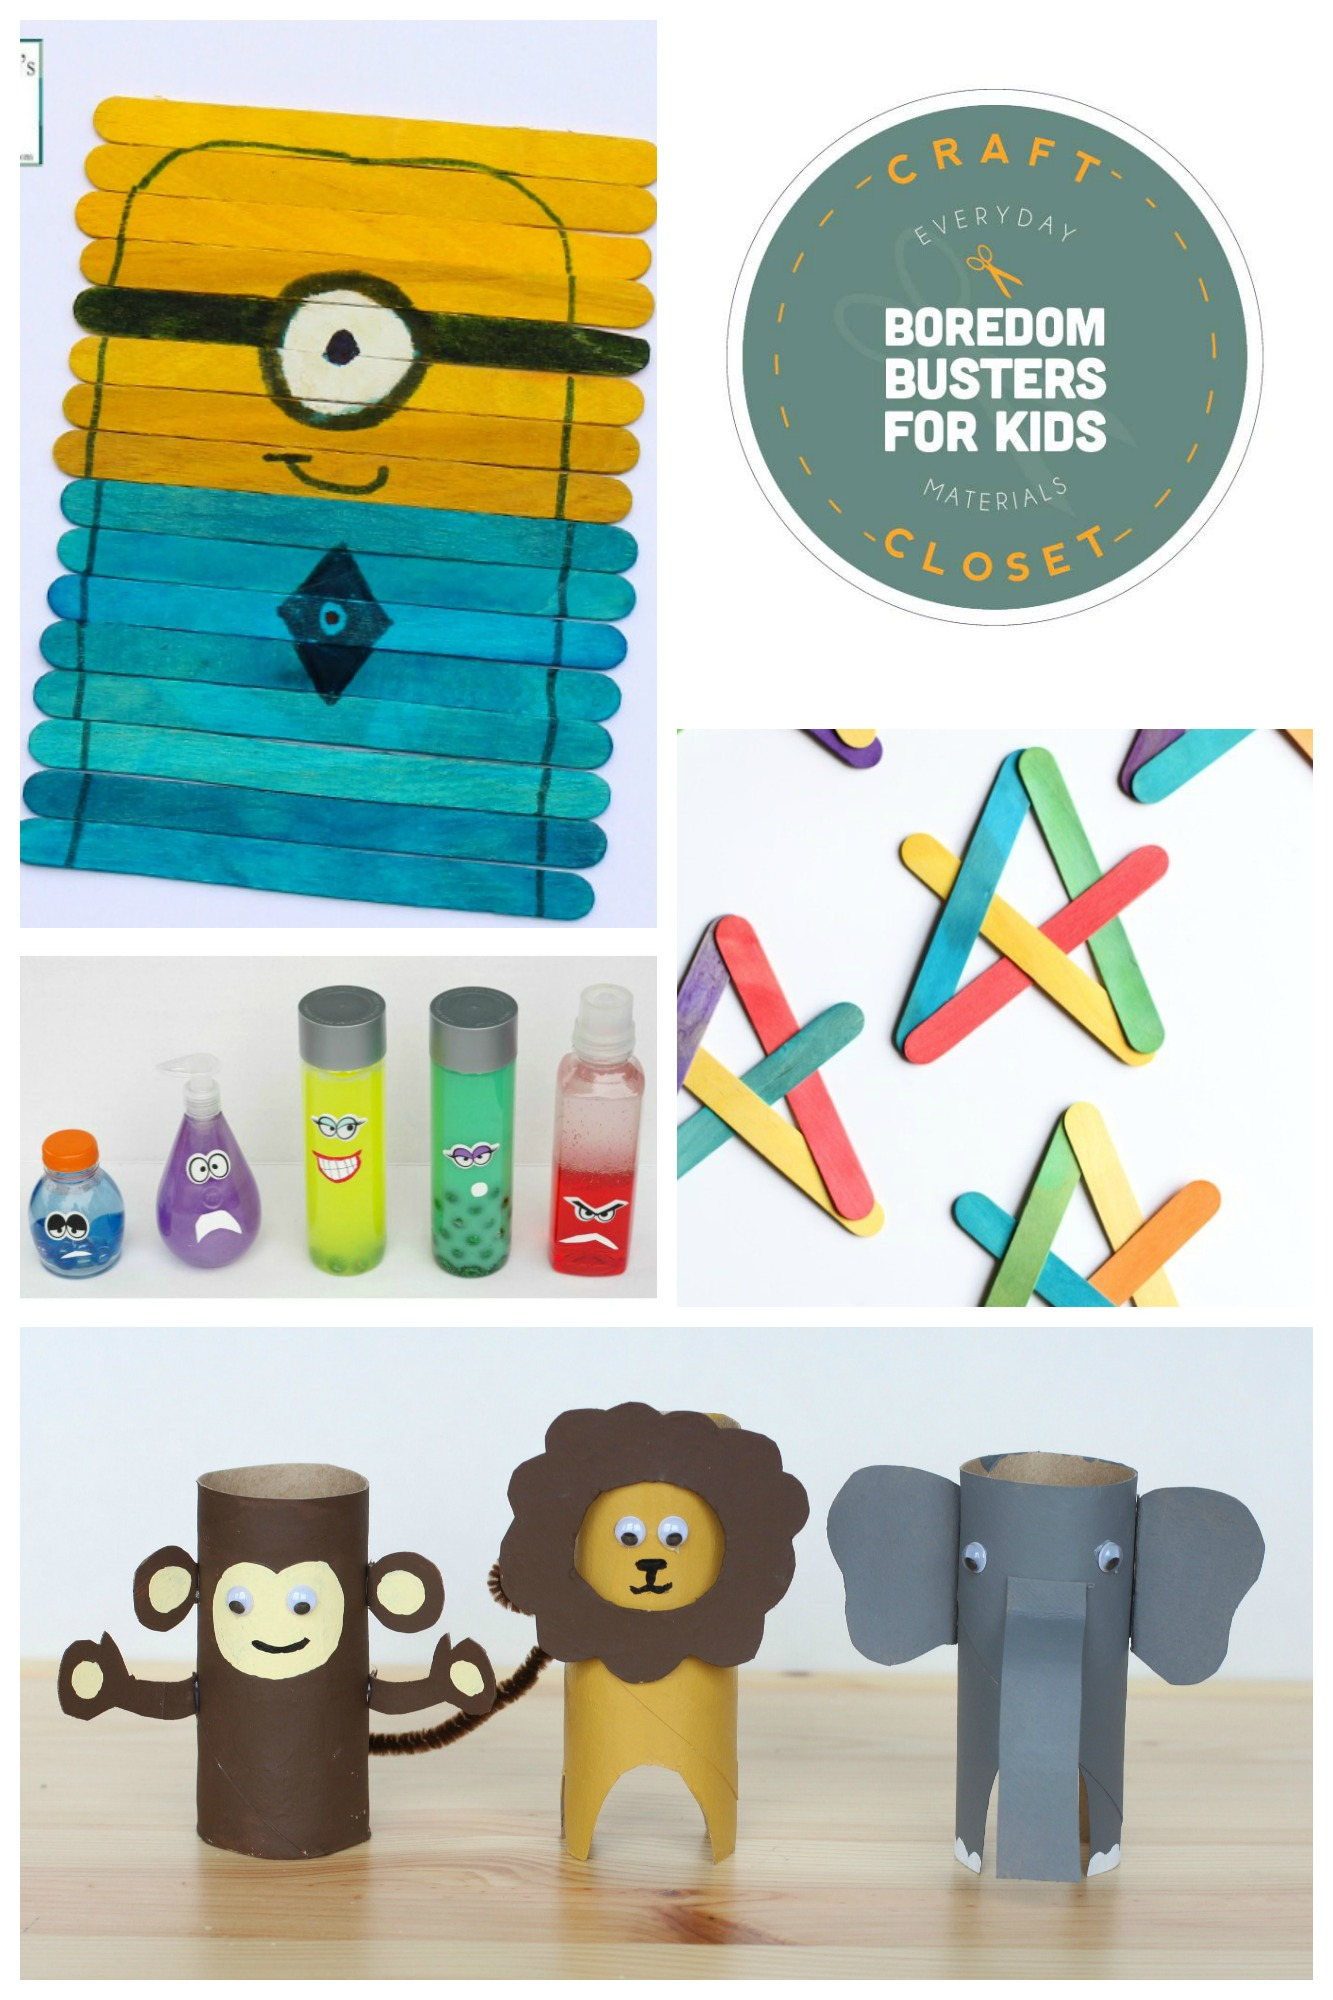 25+ Crafts and Activities for Kids Using Everyday Materials